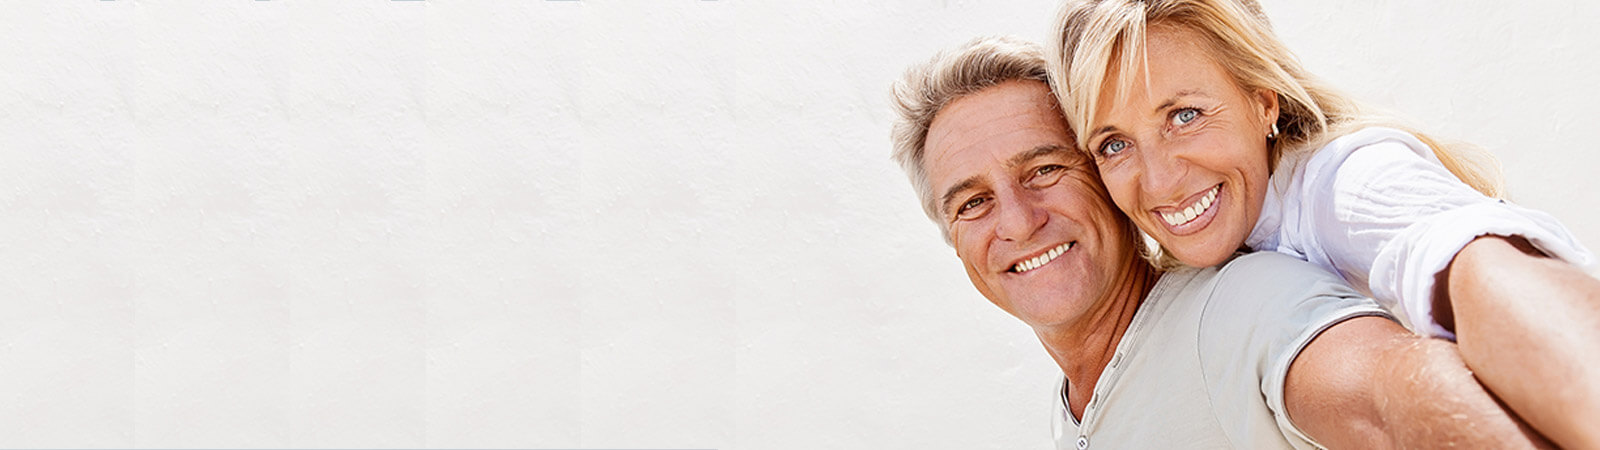 "Same-day dentist offers one-day dental implants ""near me"" in Daly City, CA"